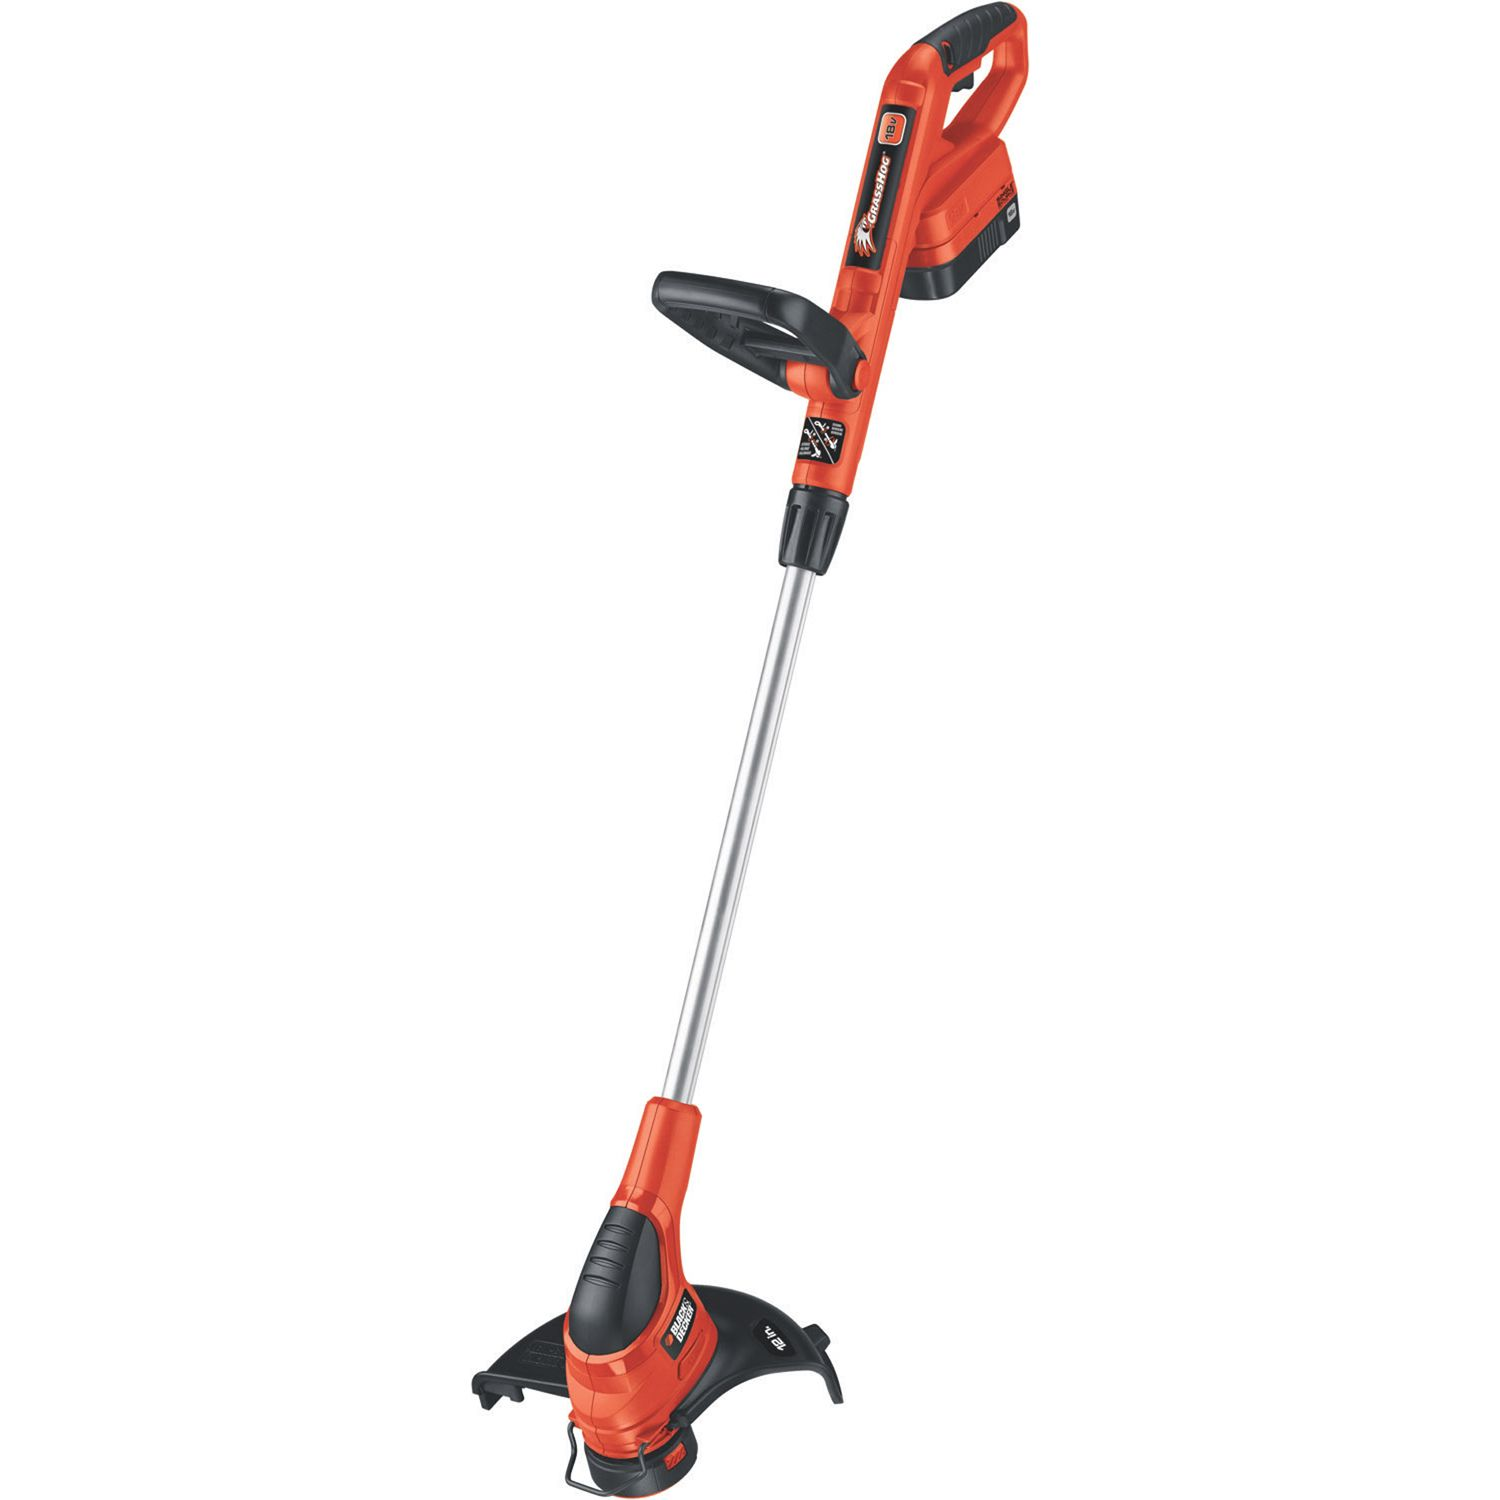 Craftsman 30Cc 4-Cycle Curved Shaft Weedwacker Gas Trimmer